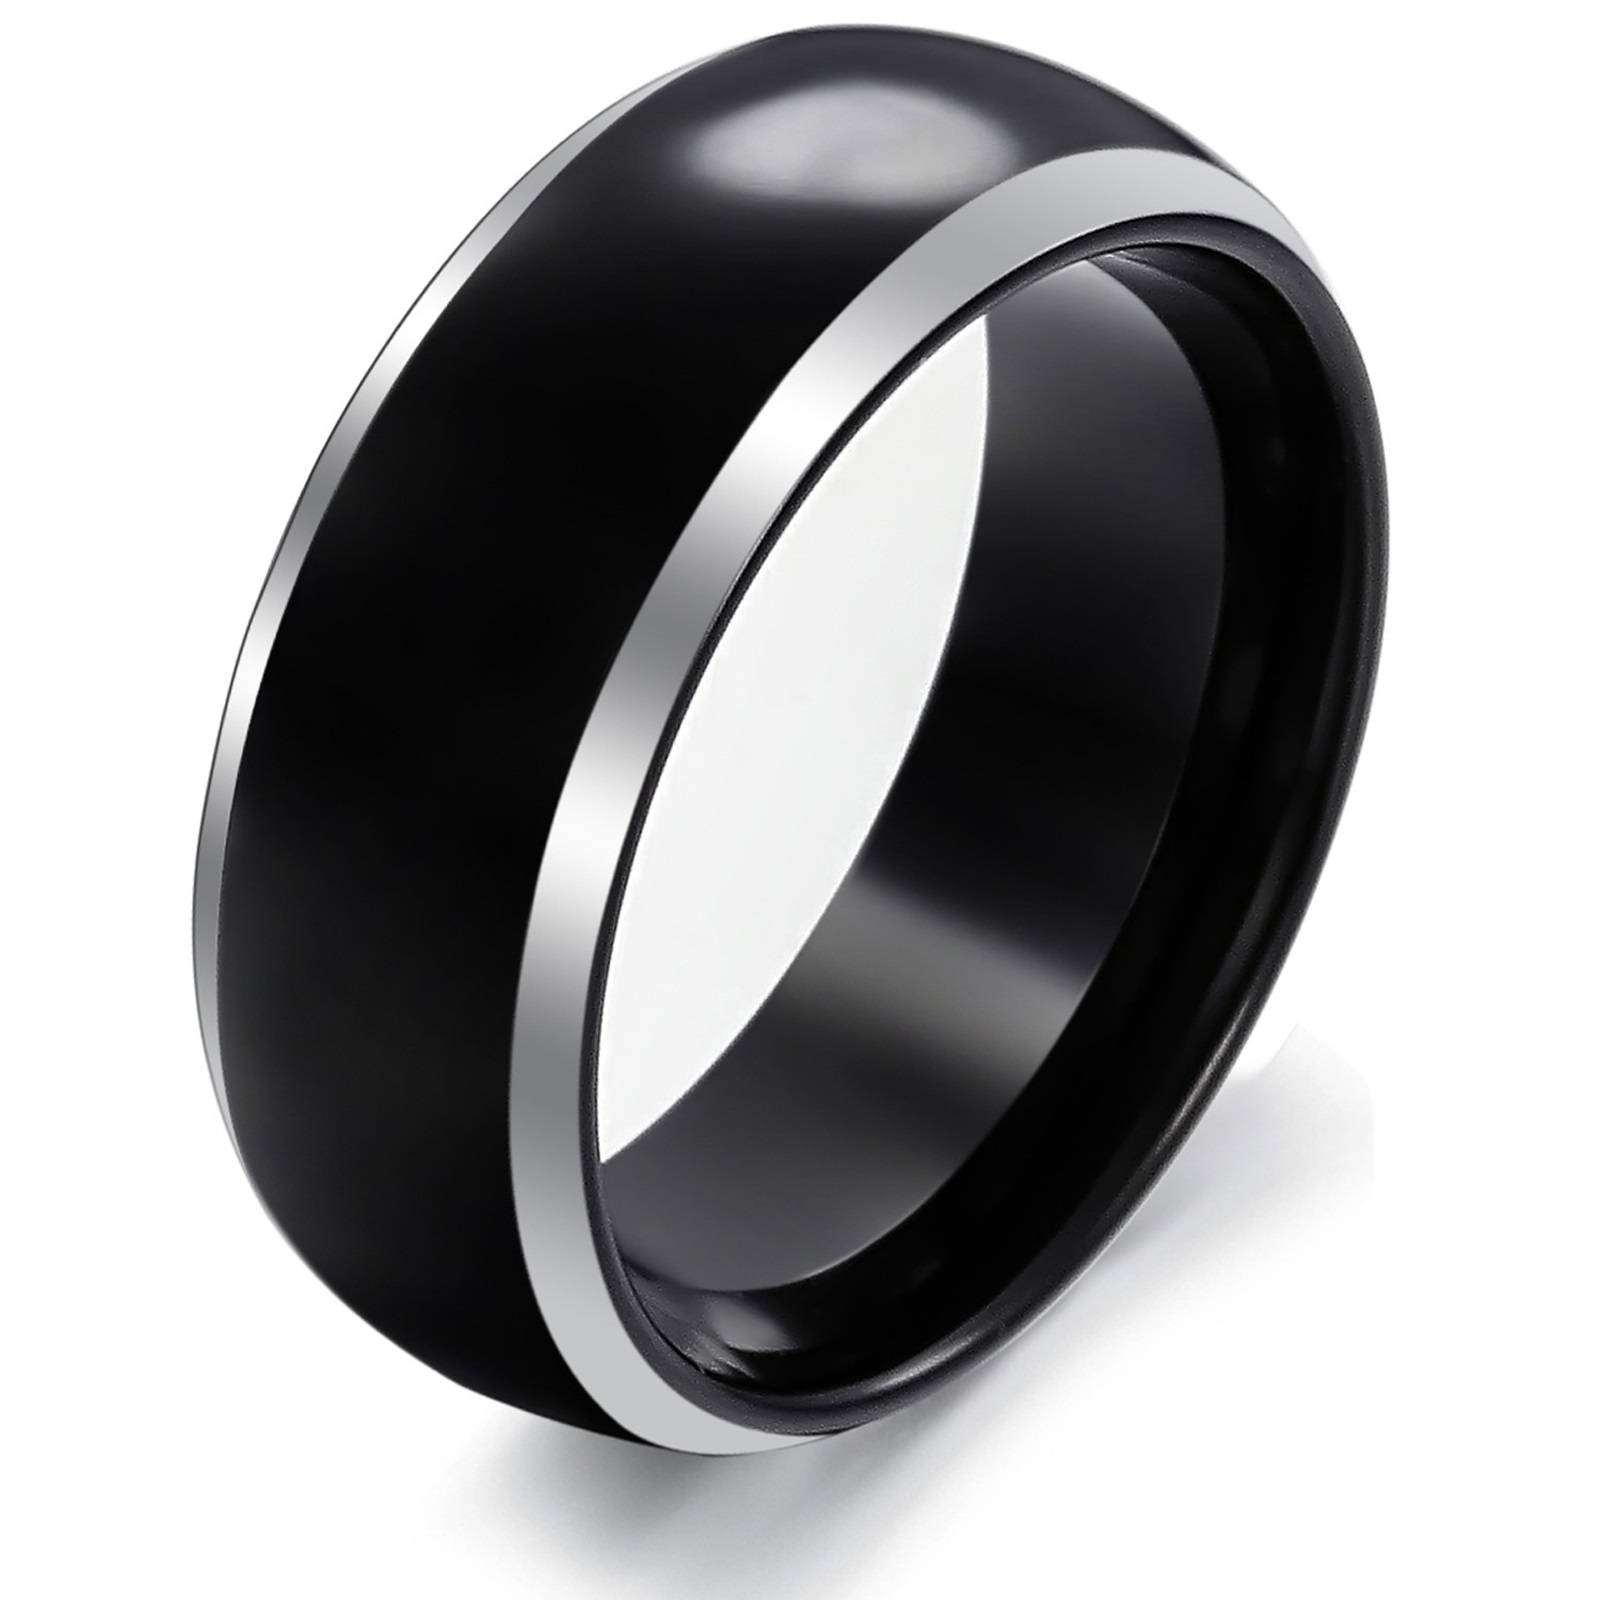 b rings unisex jewelry black ca wedding titanium band mens men amazon